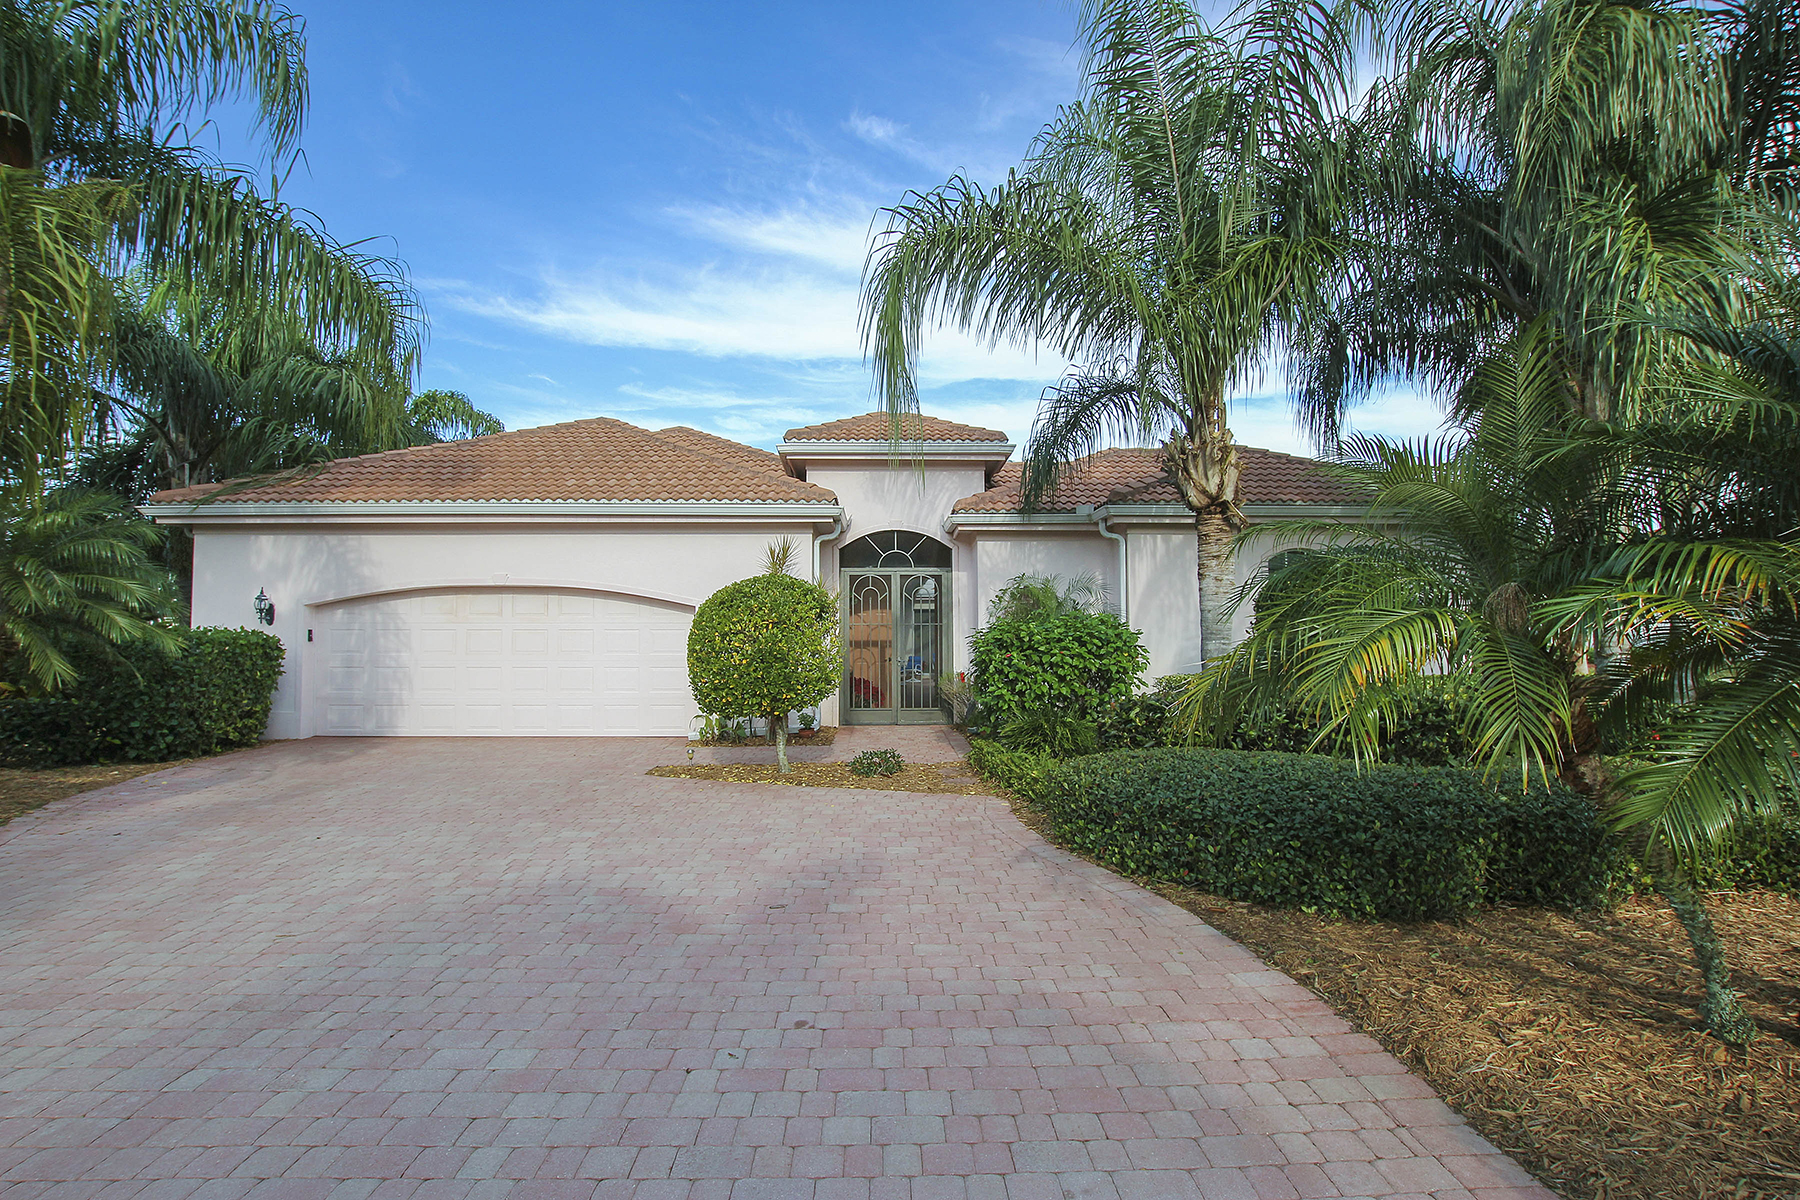 Property For Sale at 15146 Portside Dr , Fort Myers, FL 33908